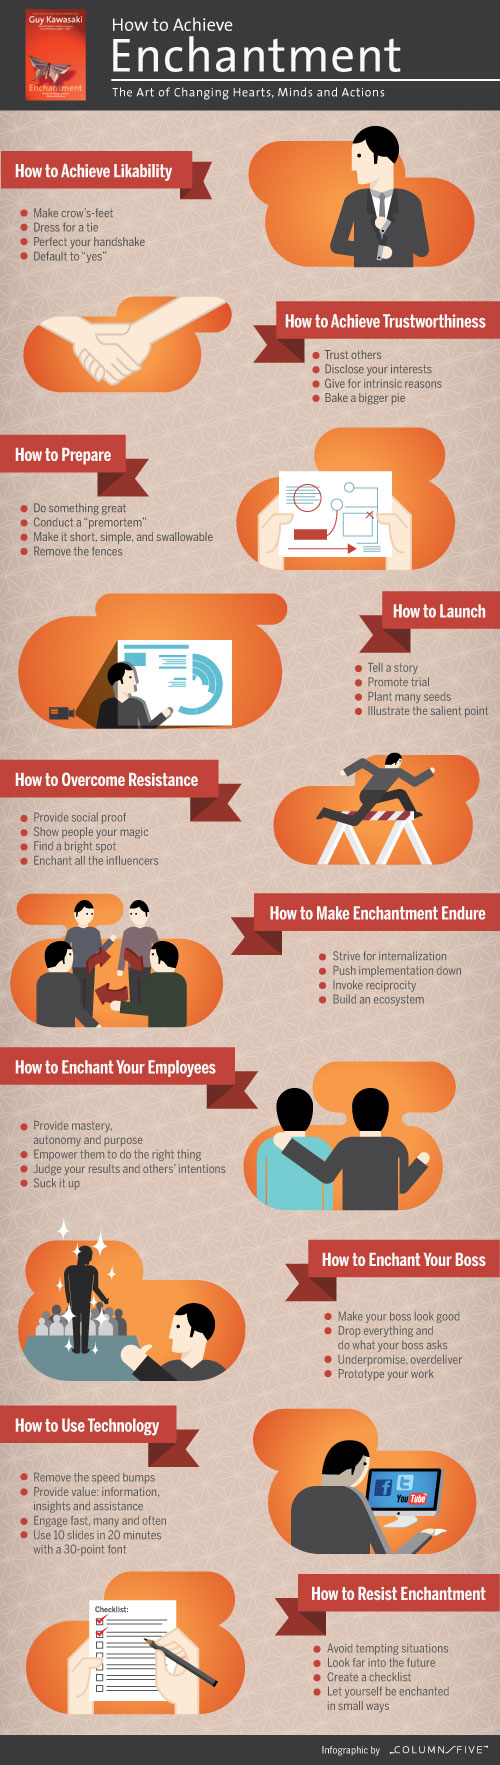 enchantment infographic How to Build Influence and Earn Trust via Enchantment: An Interview with Guy Kawasaki